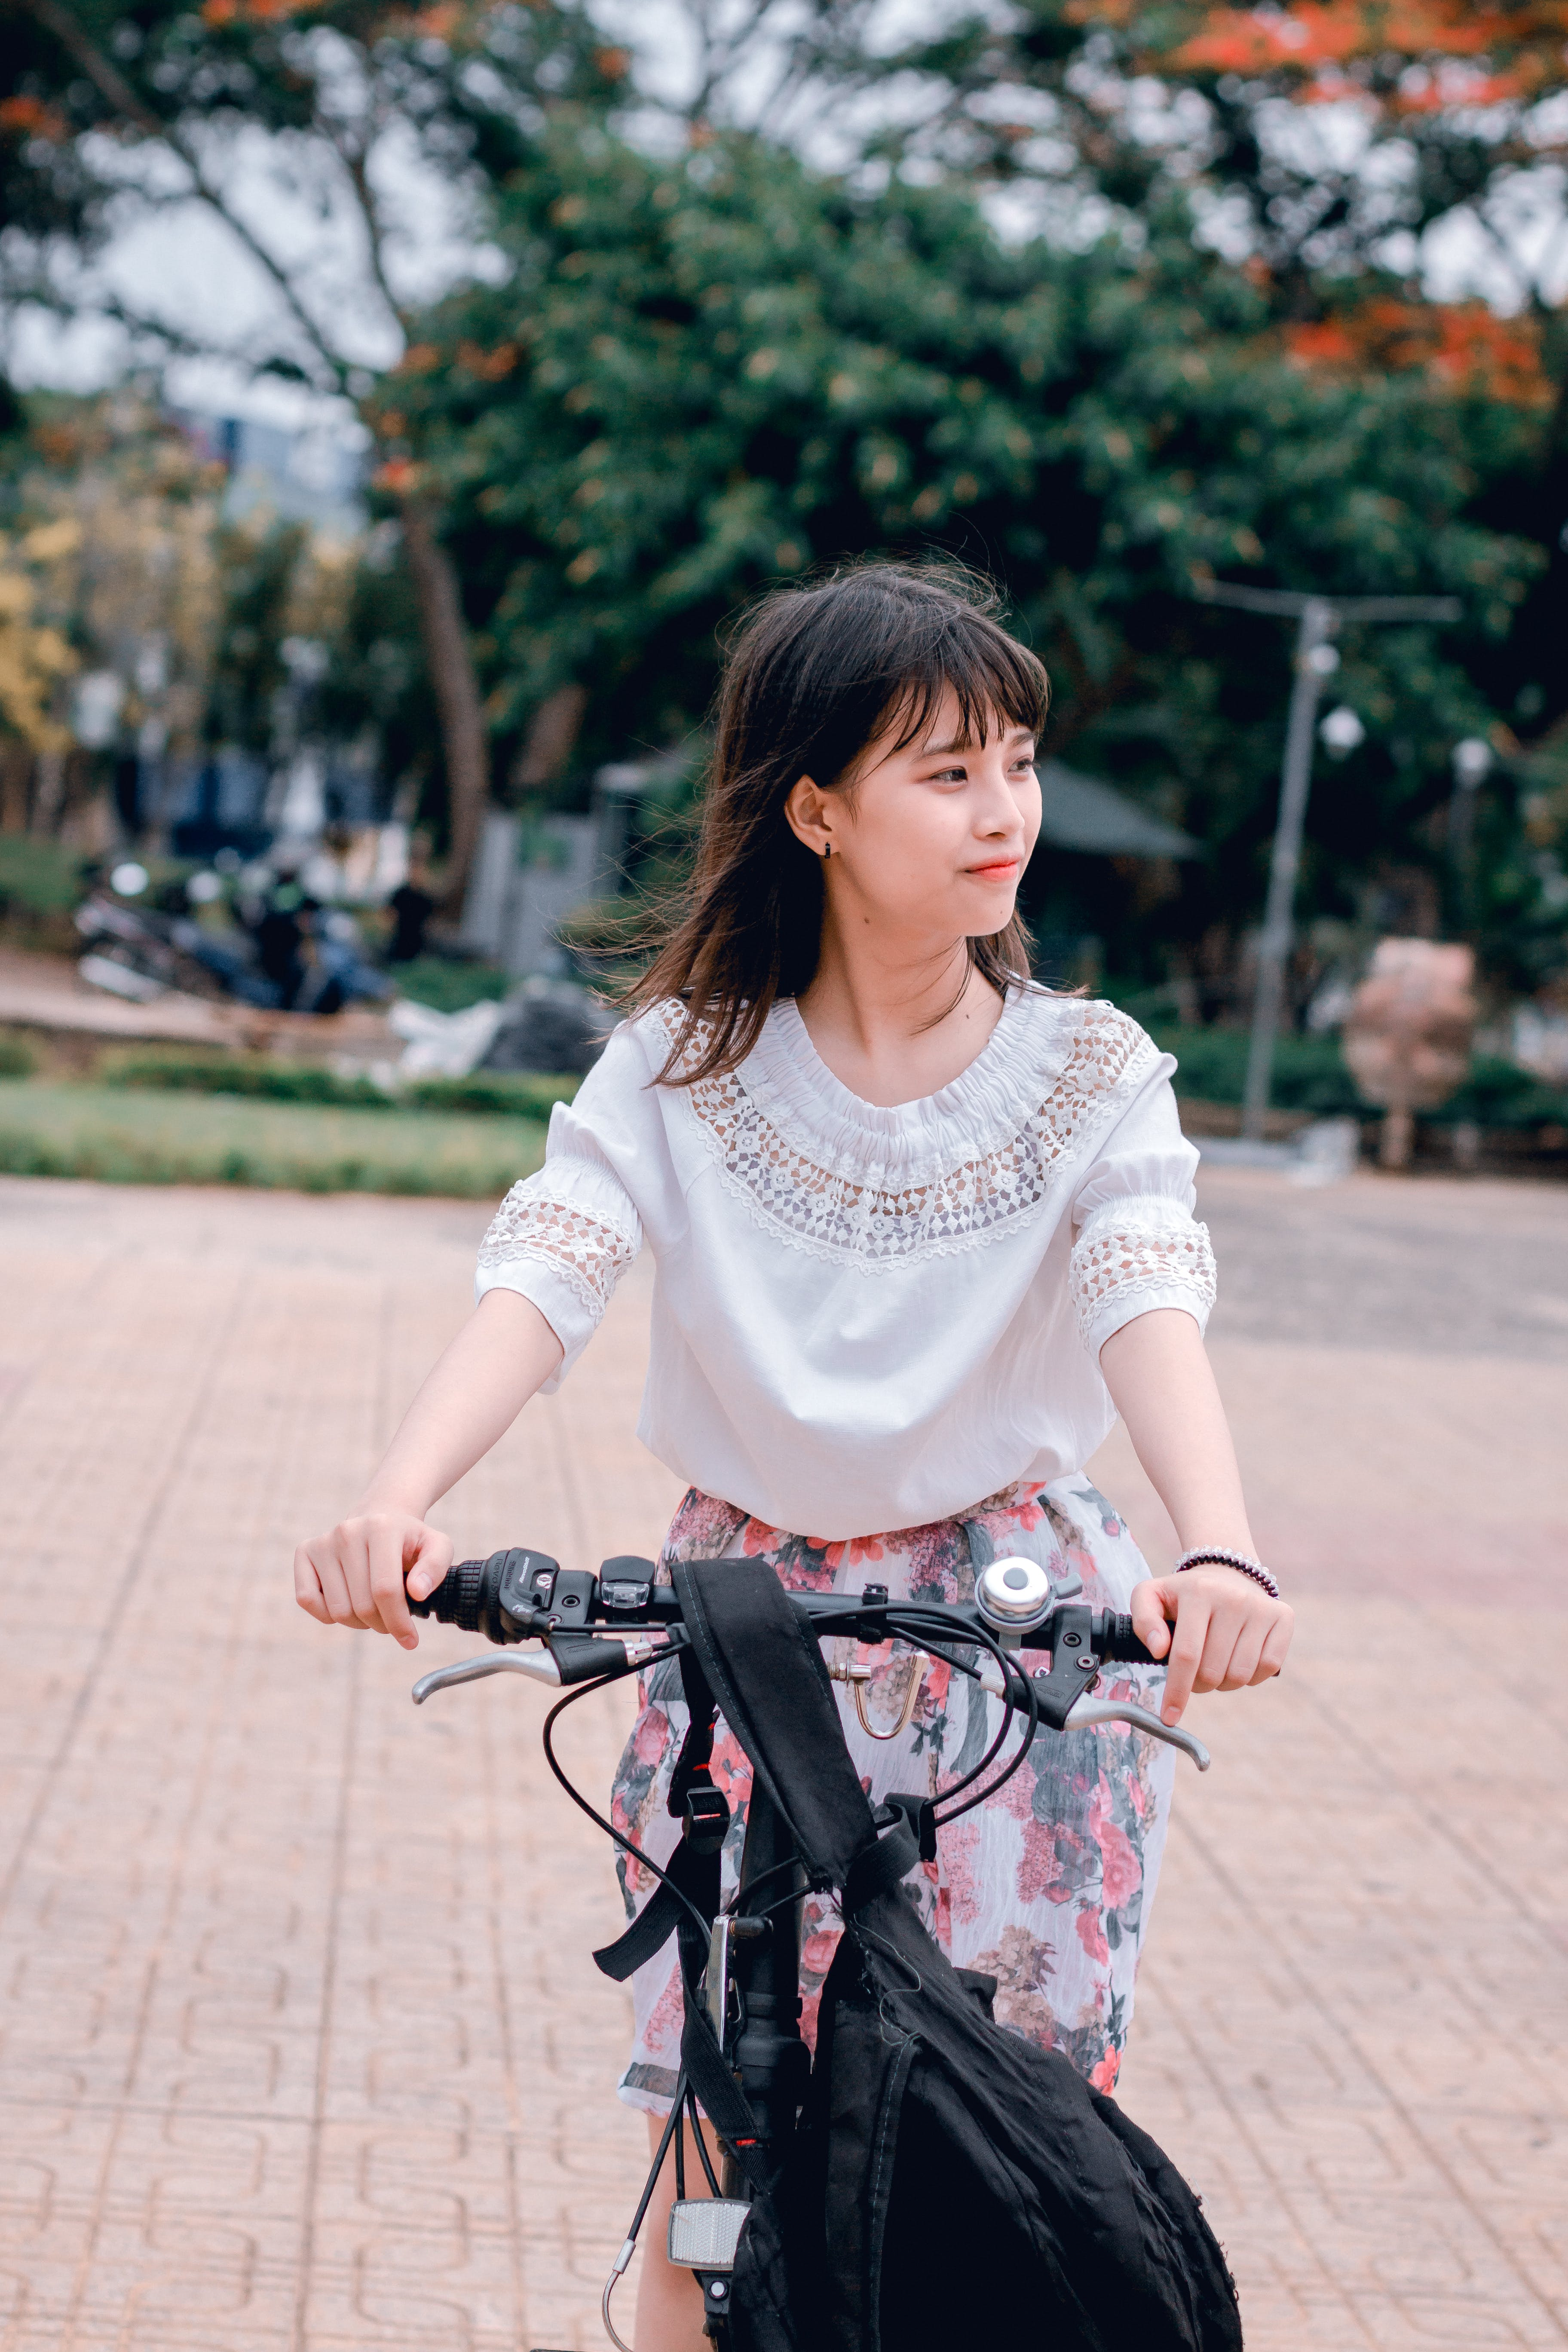 Woman Wearing White Blouse Riding Bicycle on Brown Concrete Tiled Area Near Trees